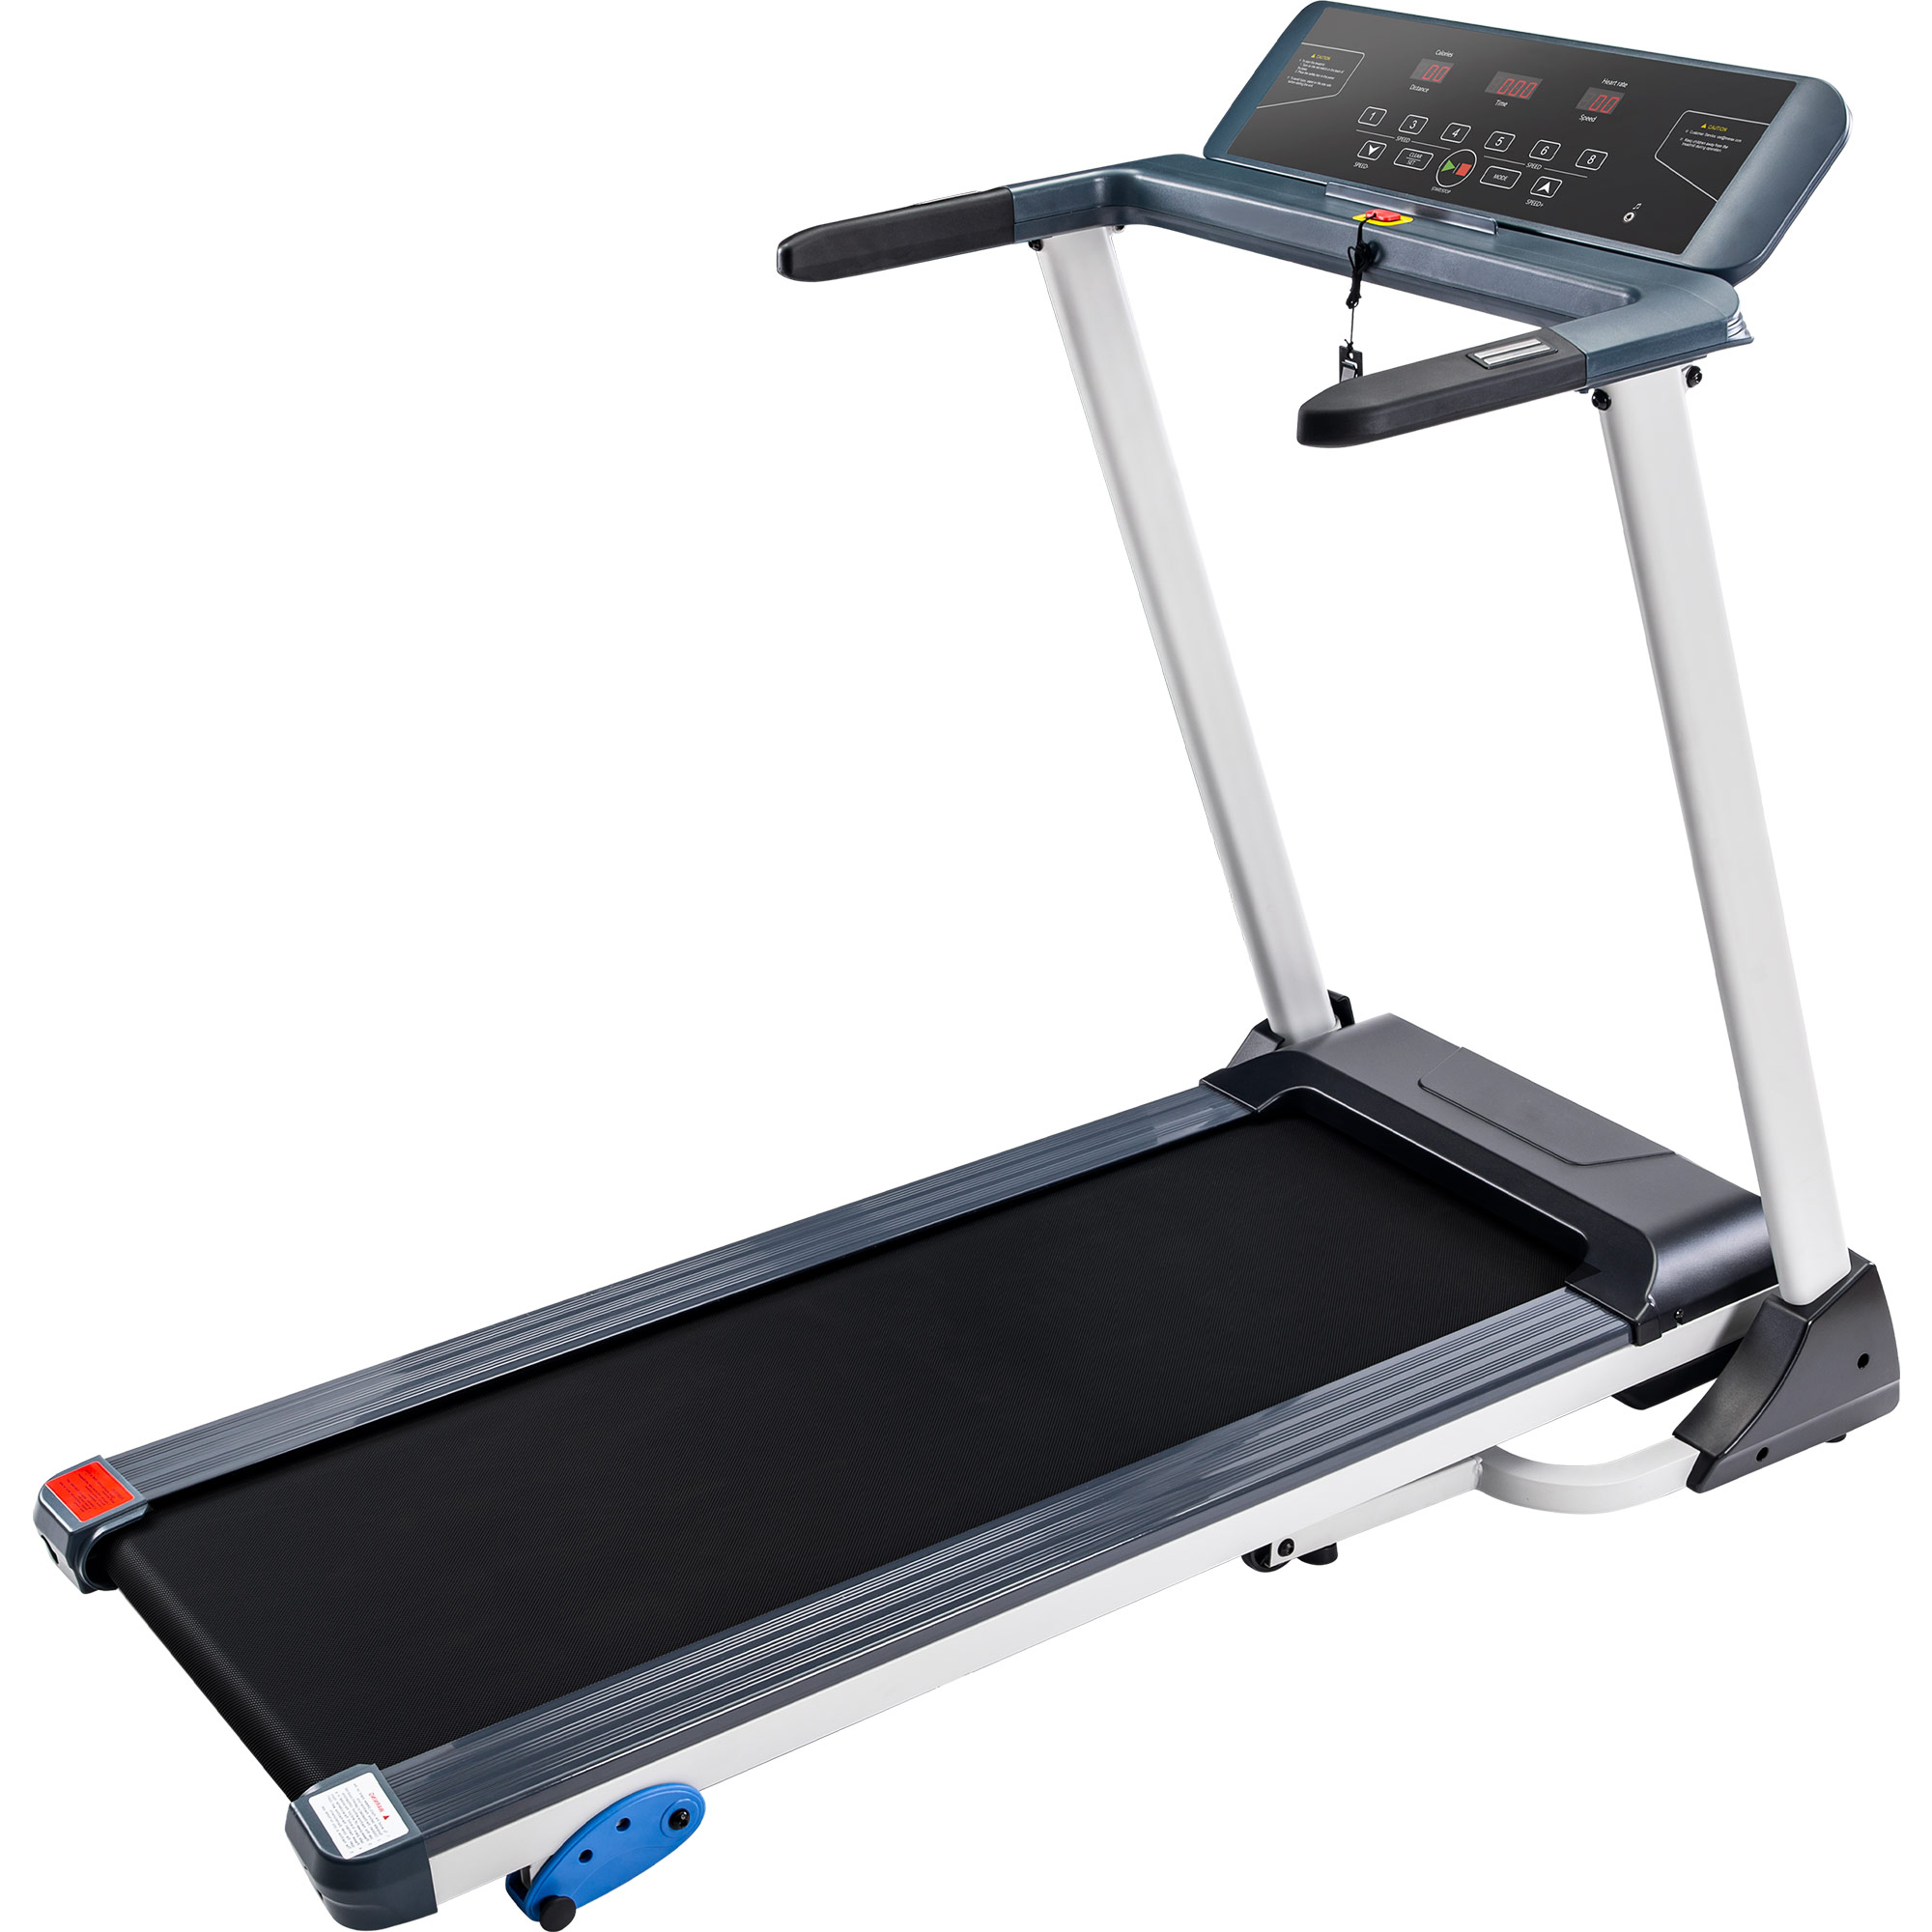 [US Direct] Folding  Treadmill Electric Motorized Running Machine With Bluetooth, Speakers And 3 Incline Options black